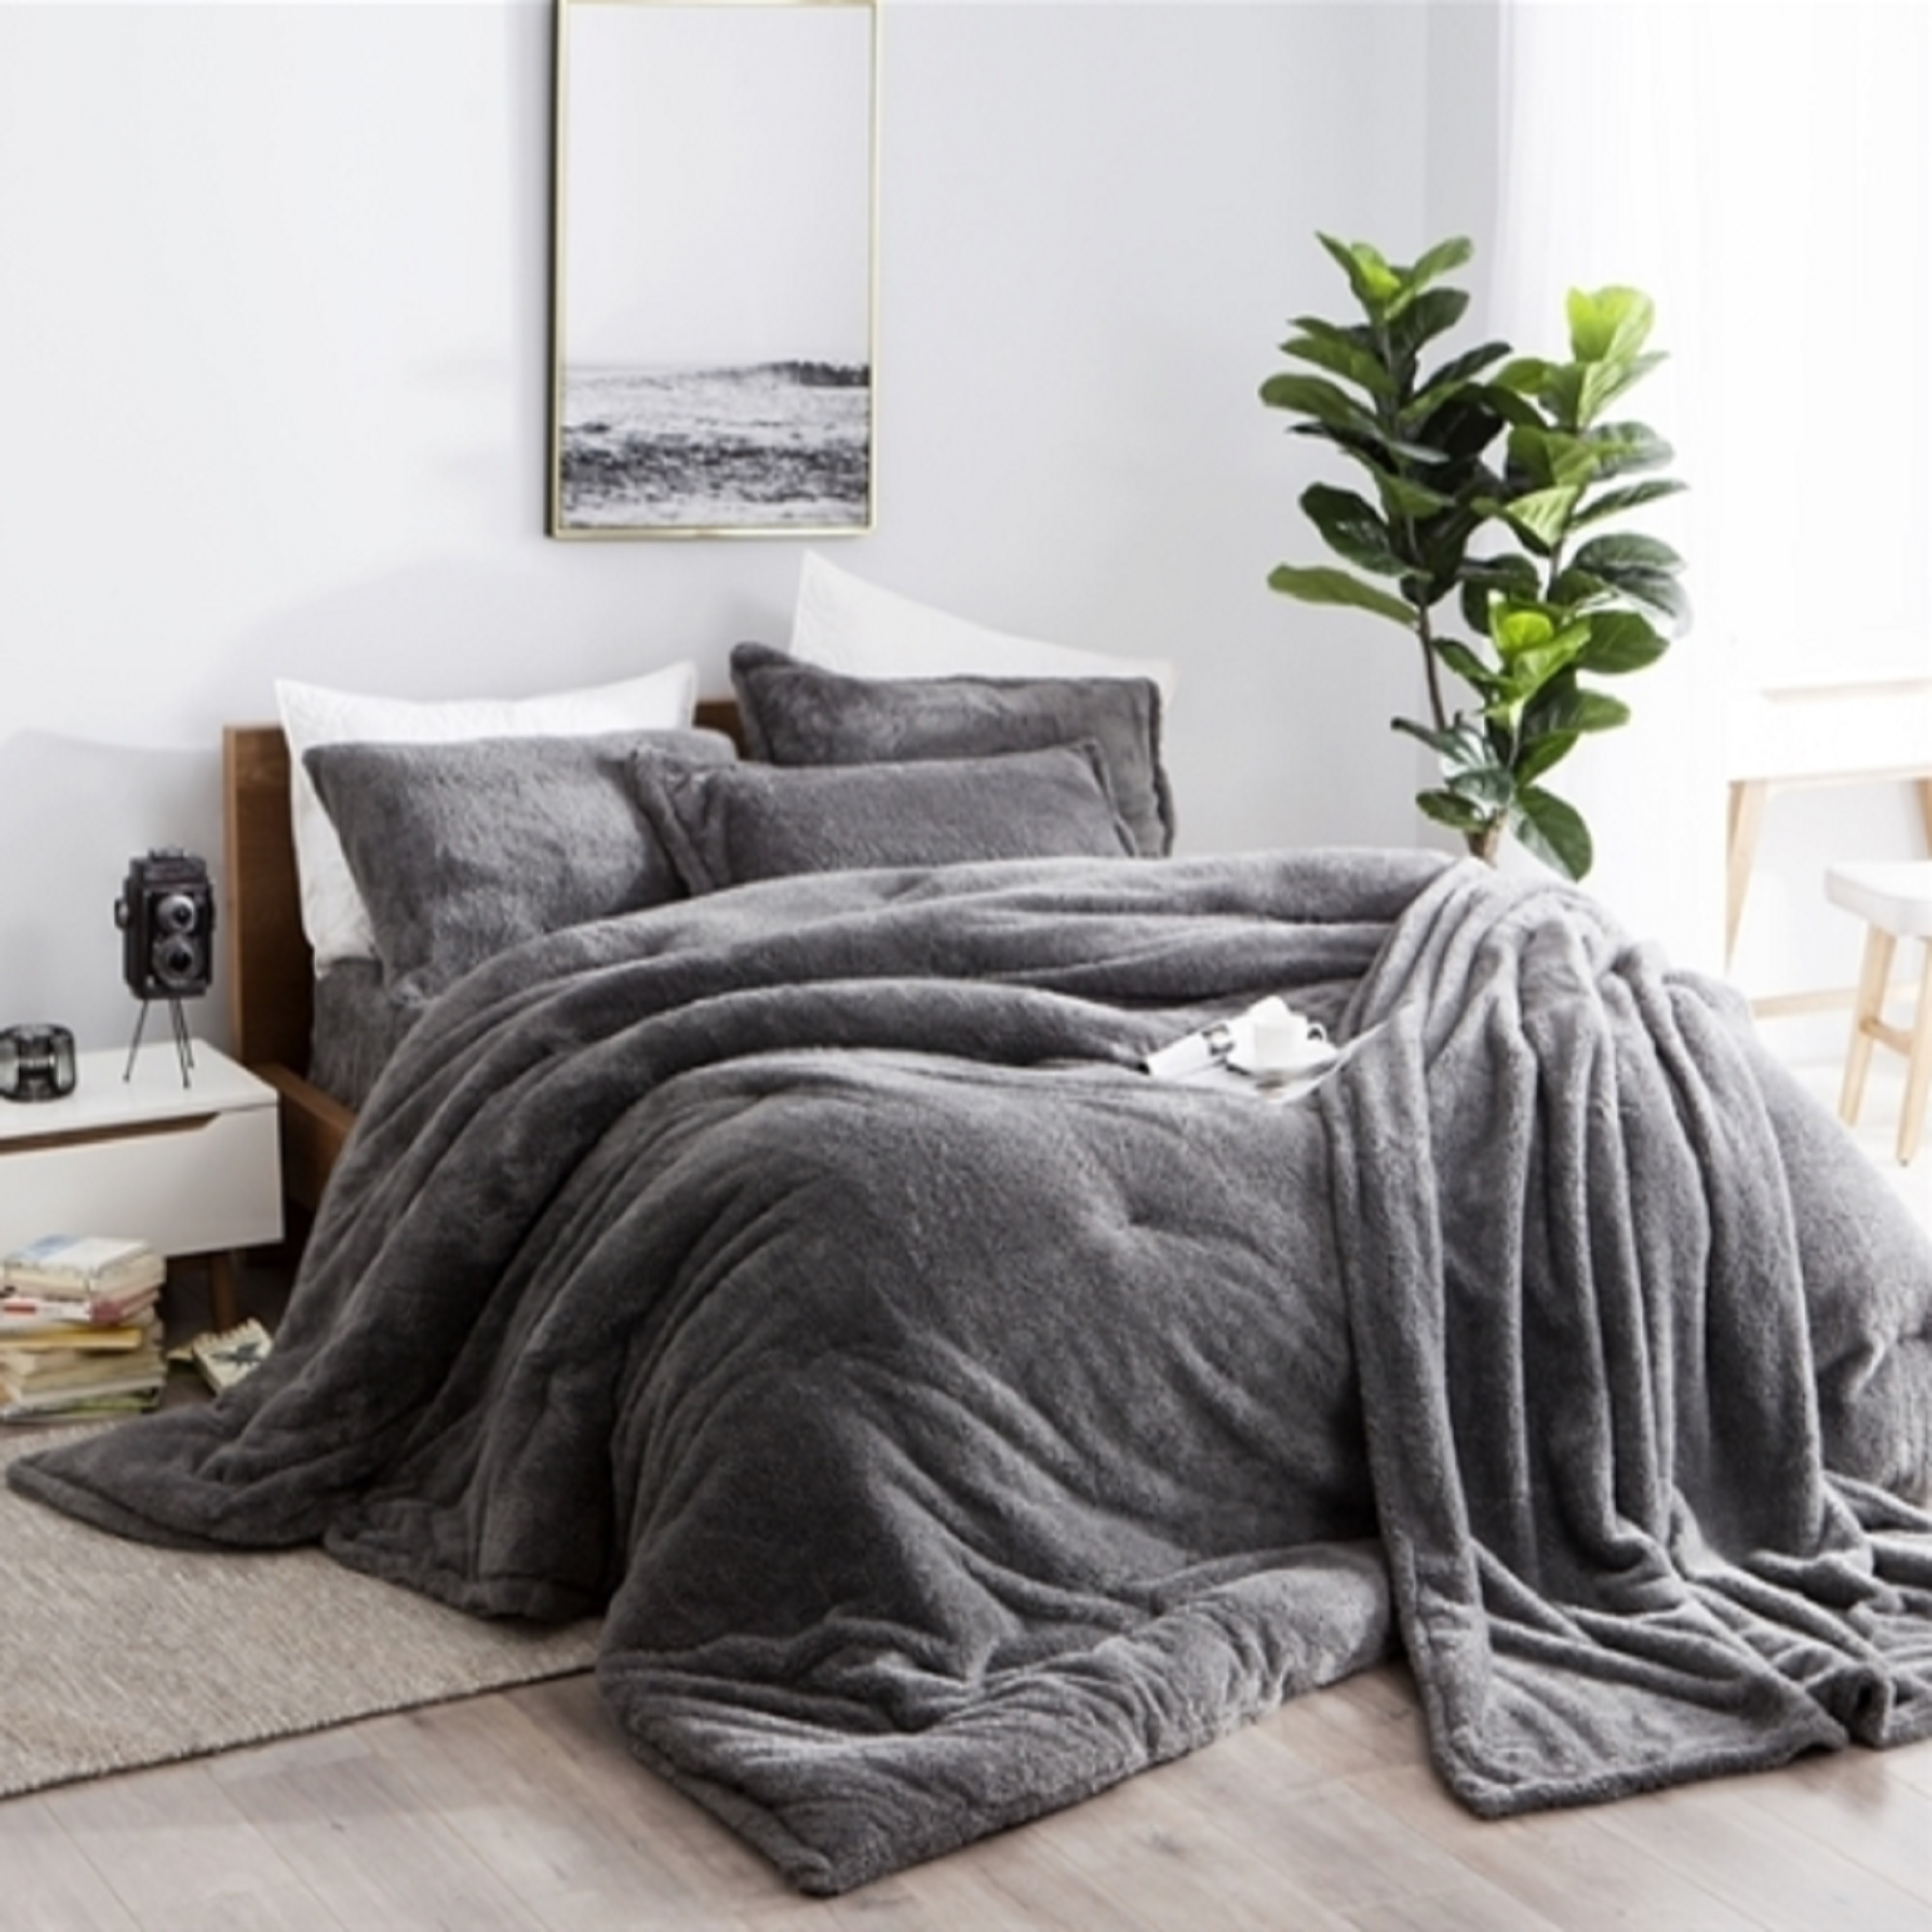 Coma Inducer® Comforter  - Charcoal - Oversized Bedding